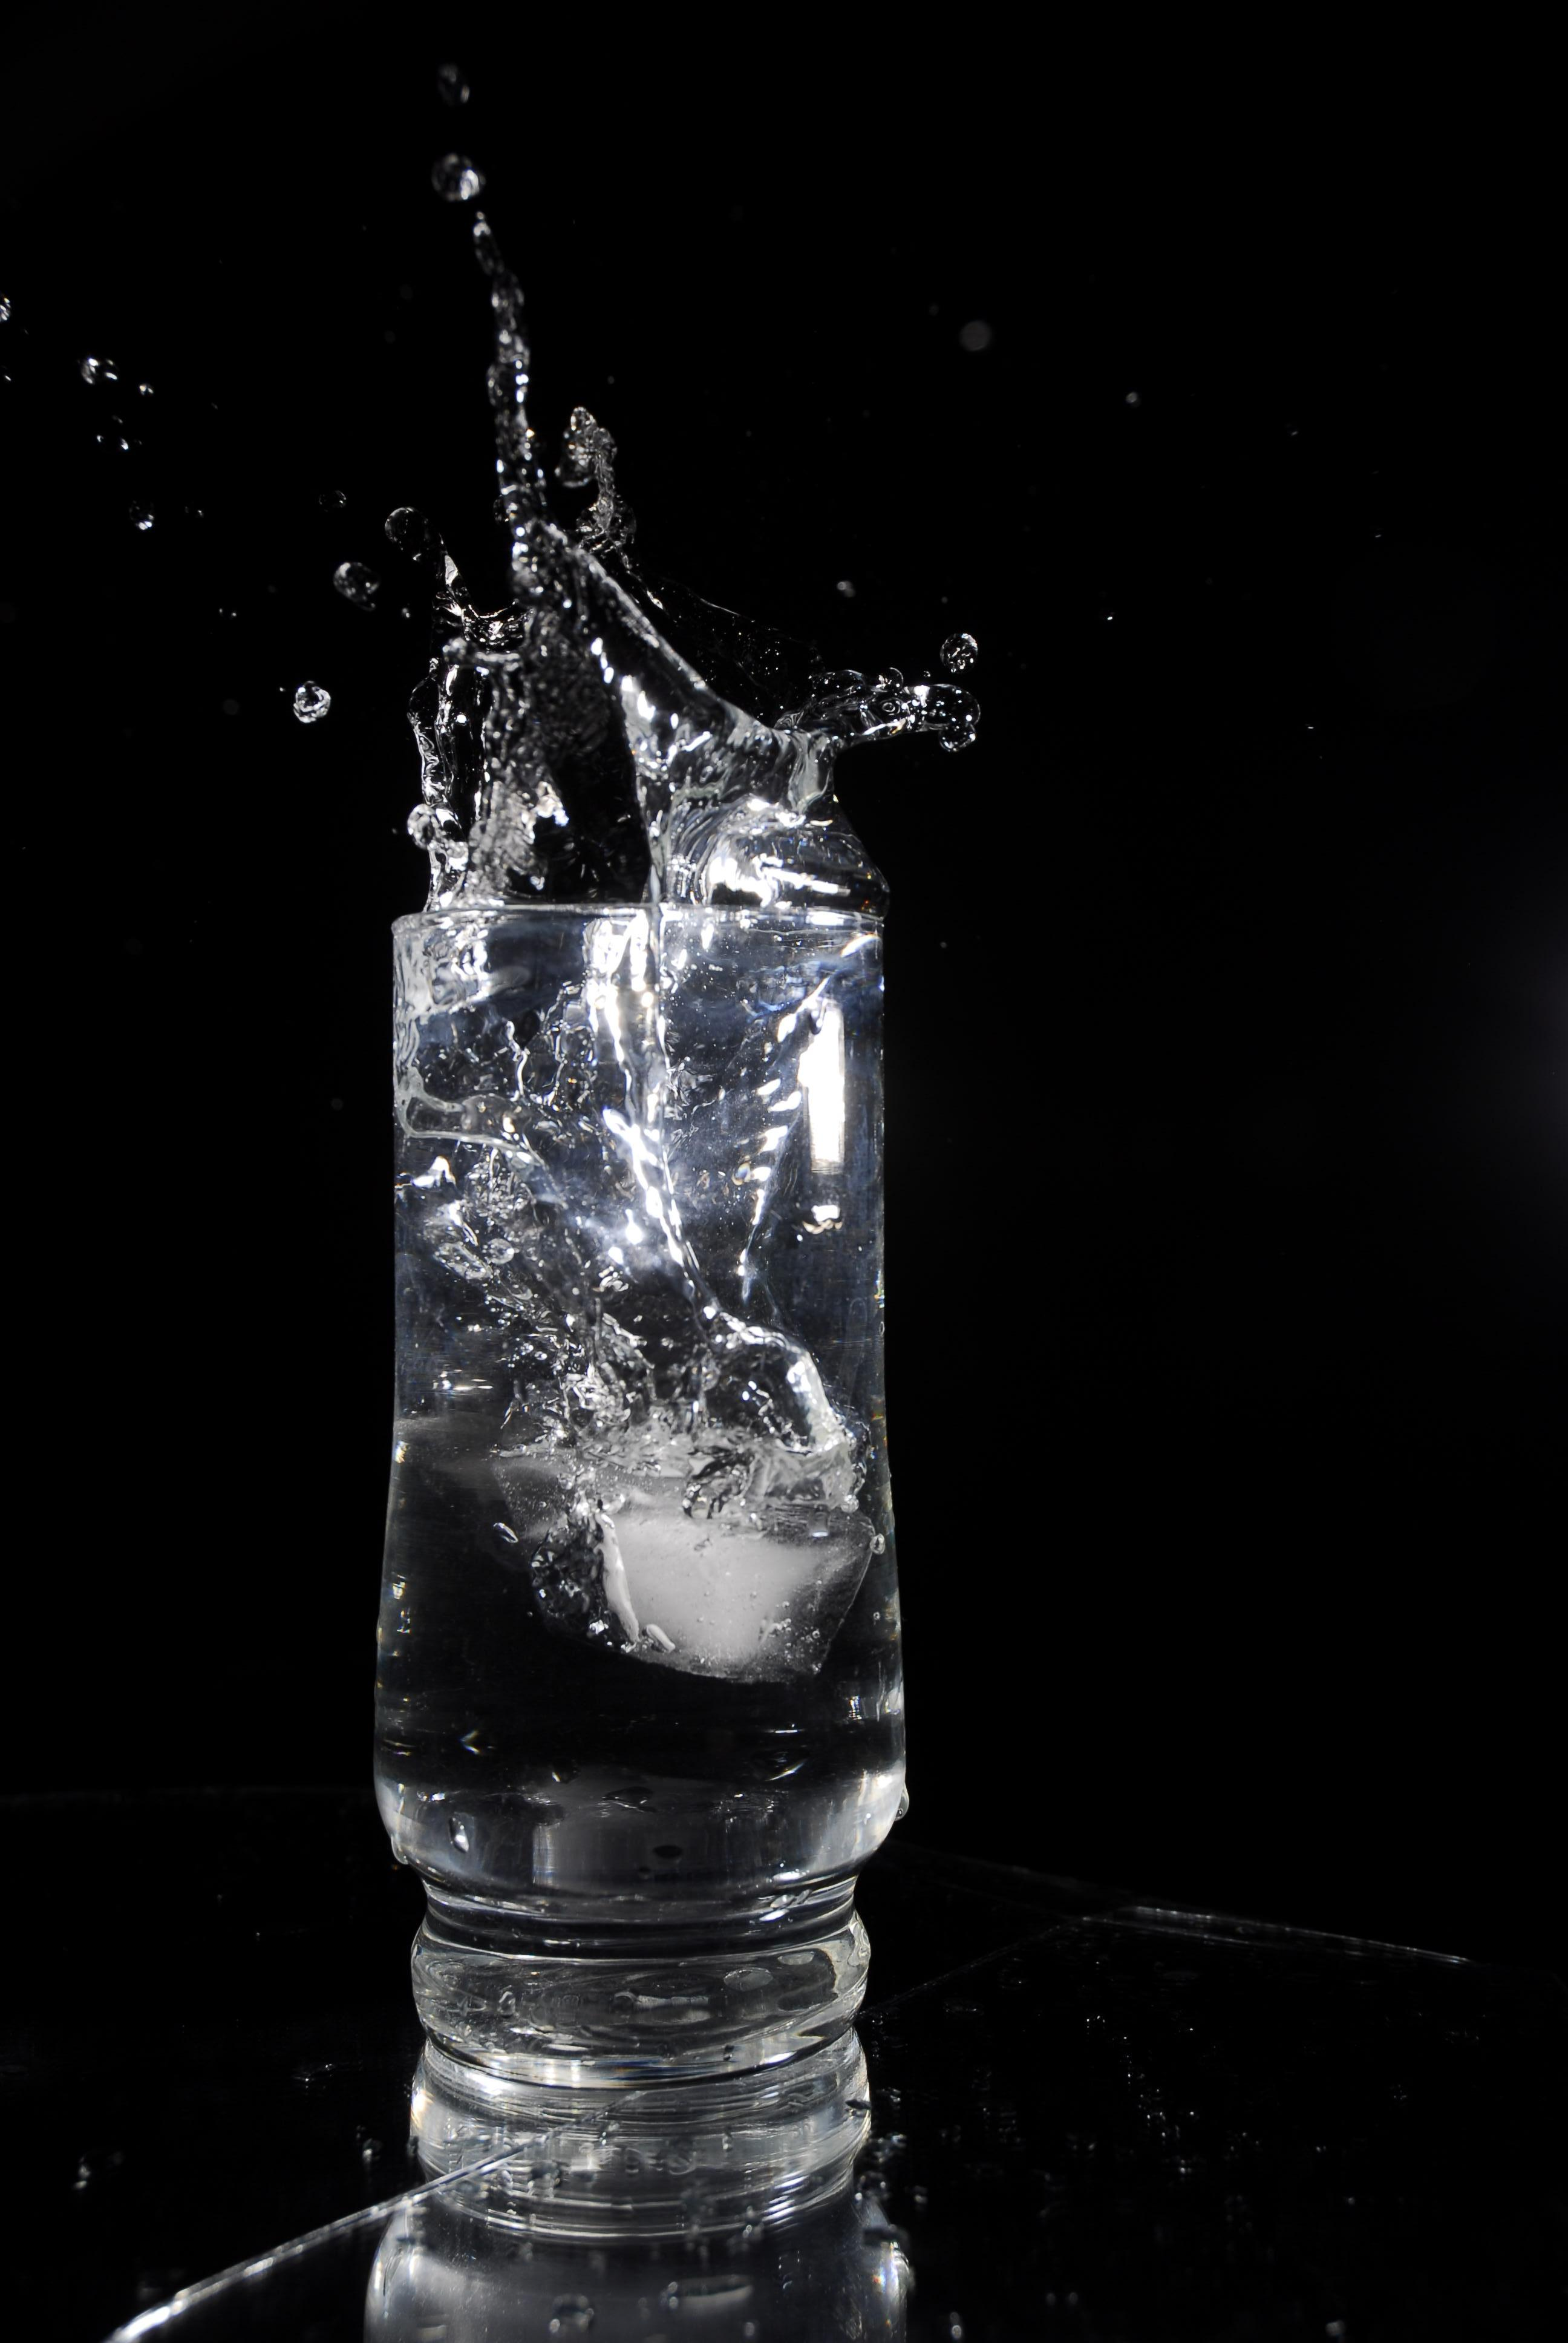 ice-cube-dropping-into-a-glass-of-water-1-1322564